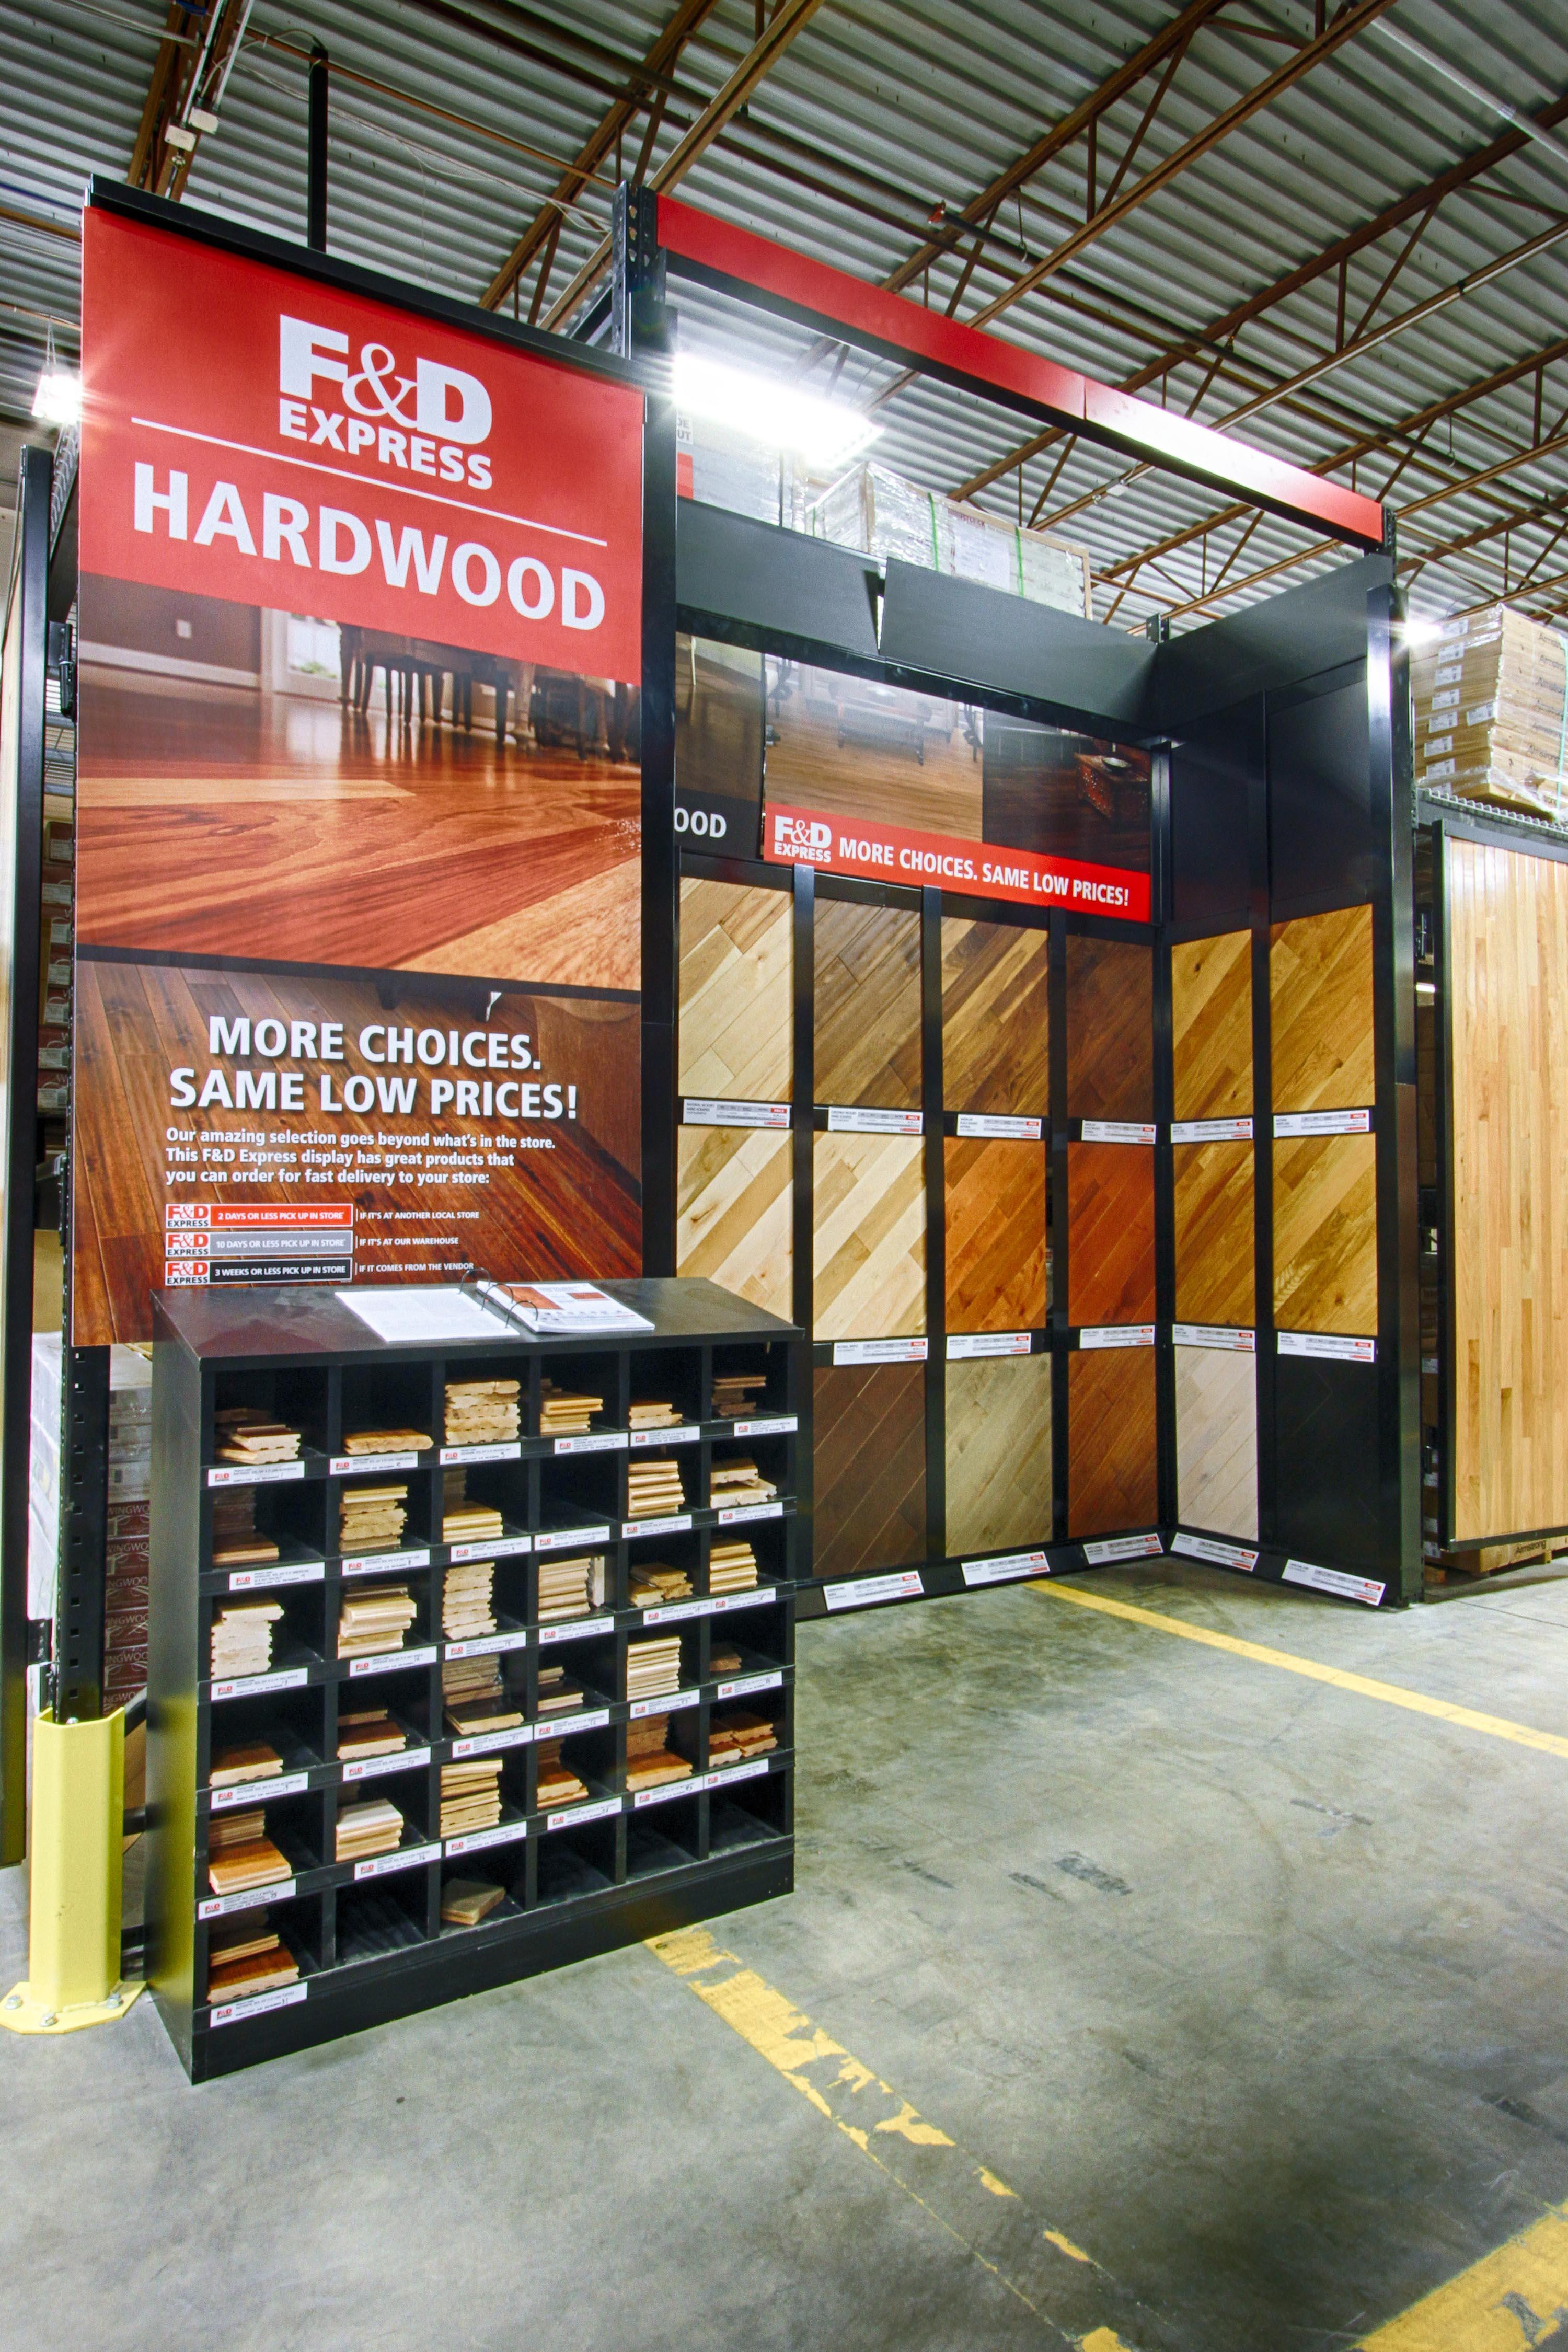 hardwood floor nailer rental cost of floor decor outlets 1200 ernest w barrett pkwy nw kennesaw ga intended for floor decor outlets 1200 ernest w barrett pkwy nw kennesaw ga general merchandise retail mapquest